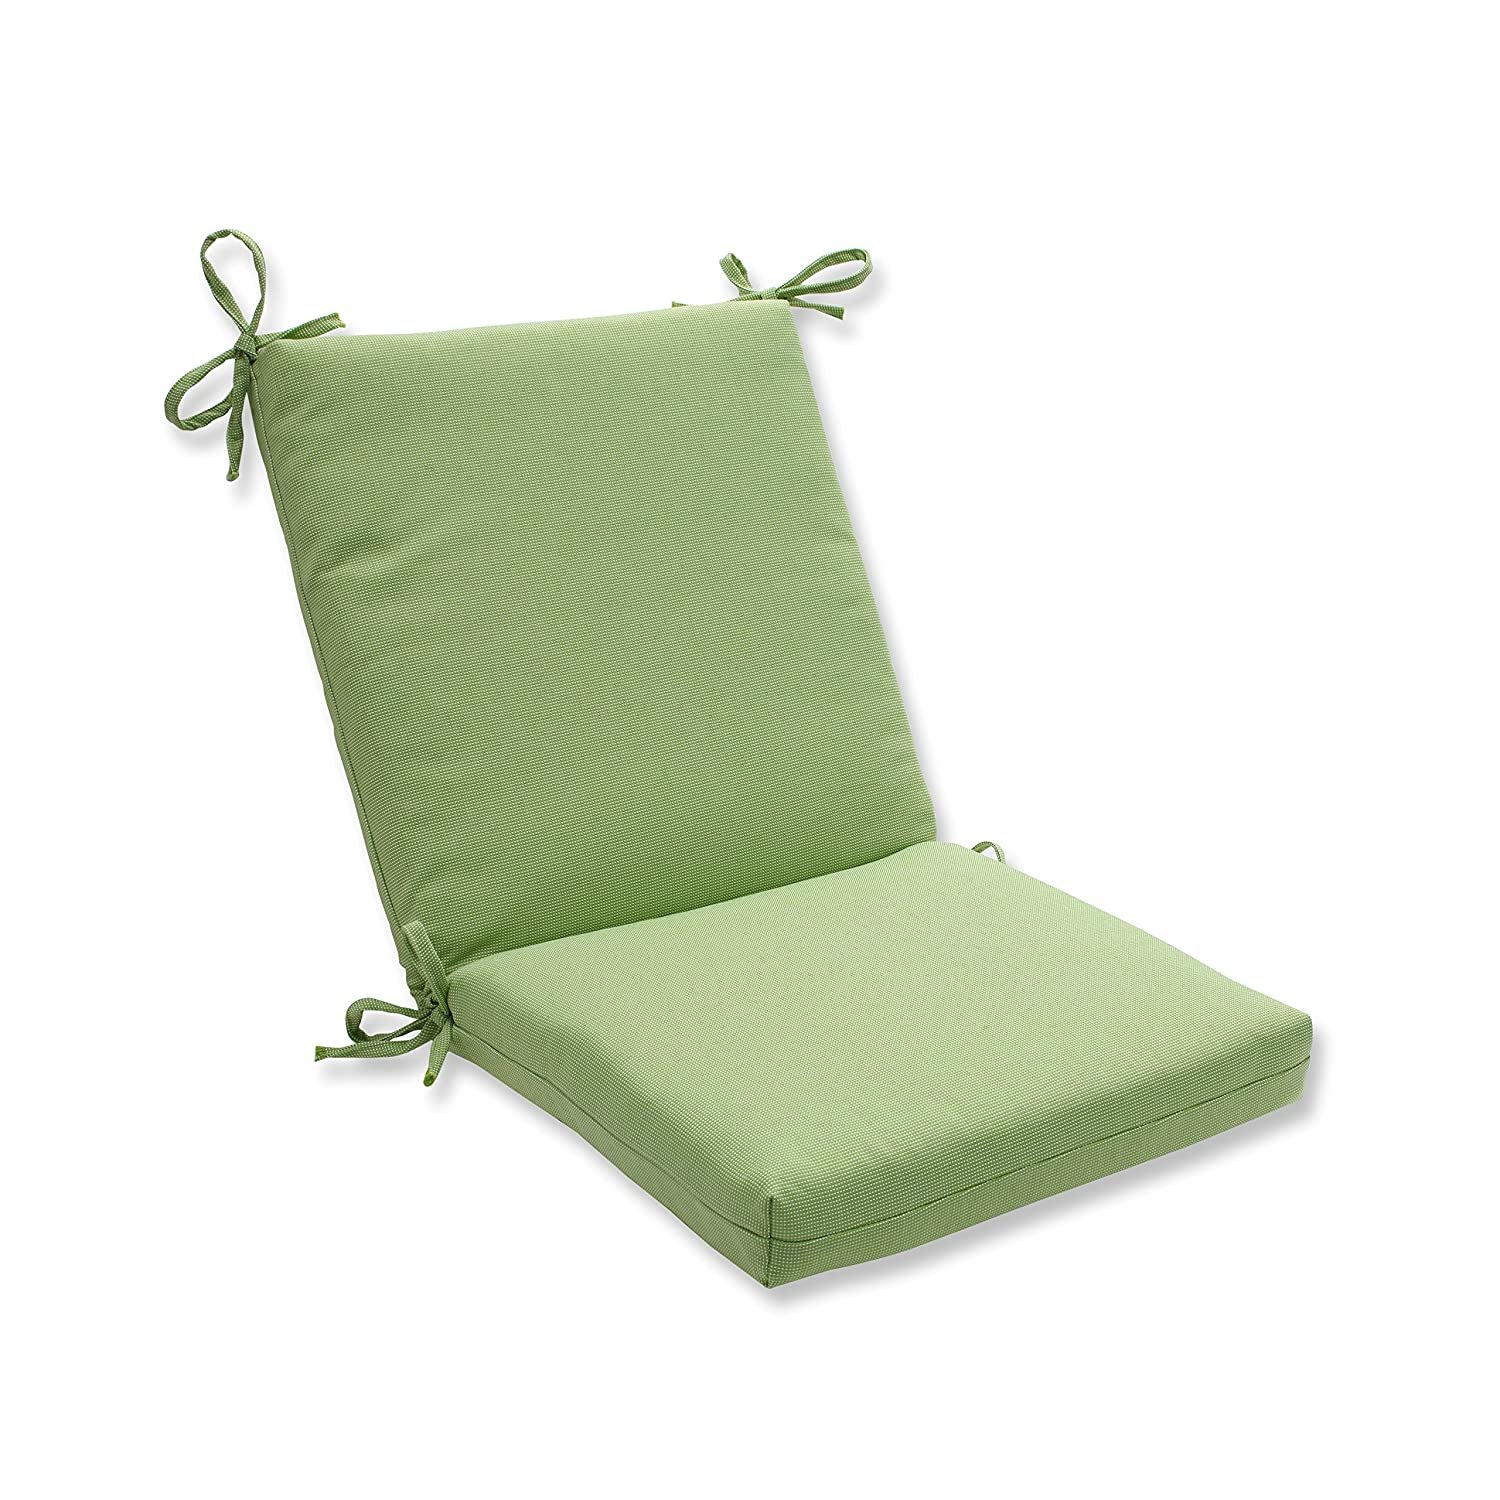 Pillow Perfect Outdoor Indoor Tweed Squared Corners Chair Cushion, Lime